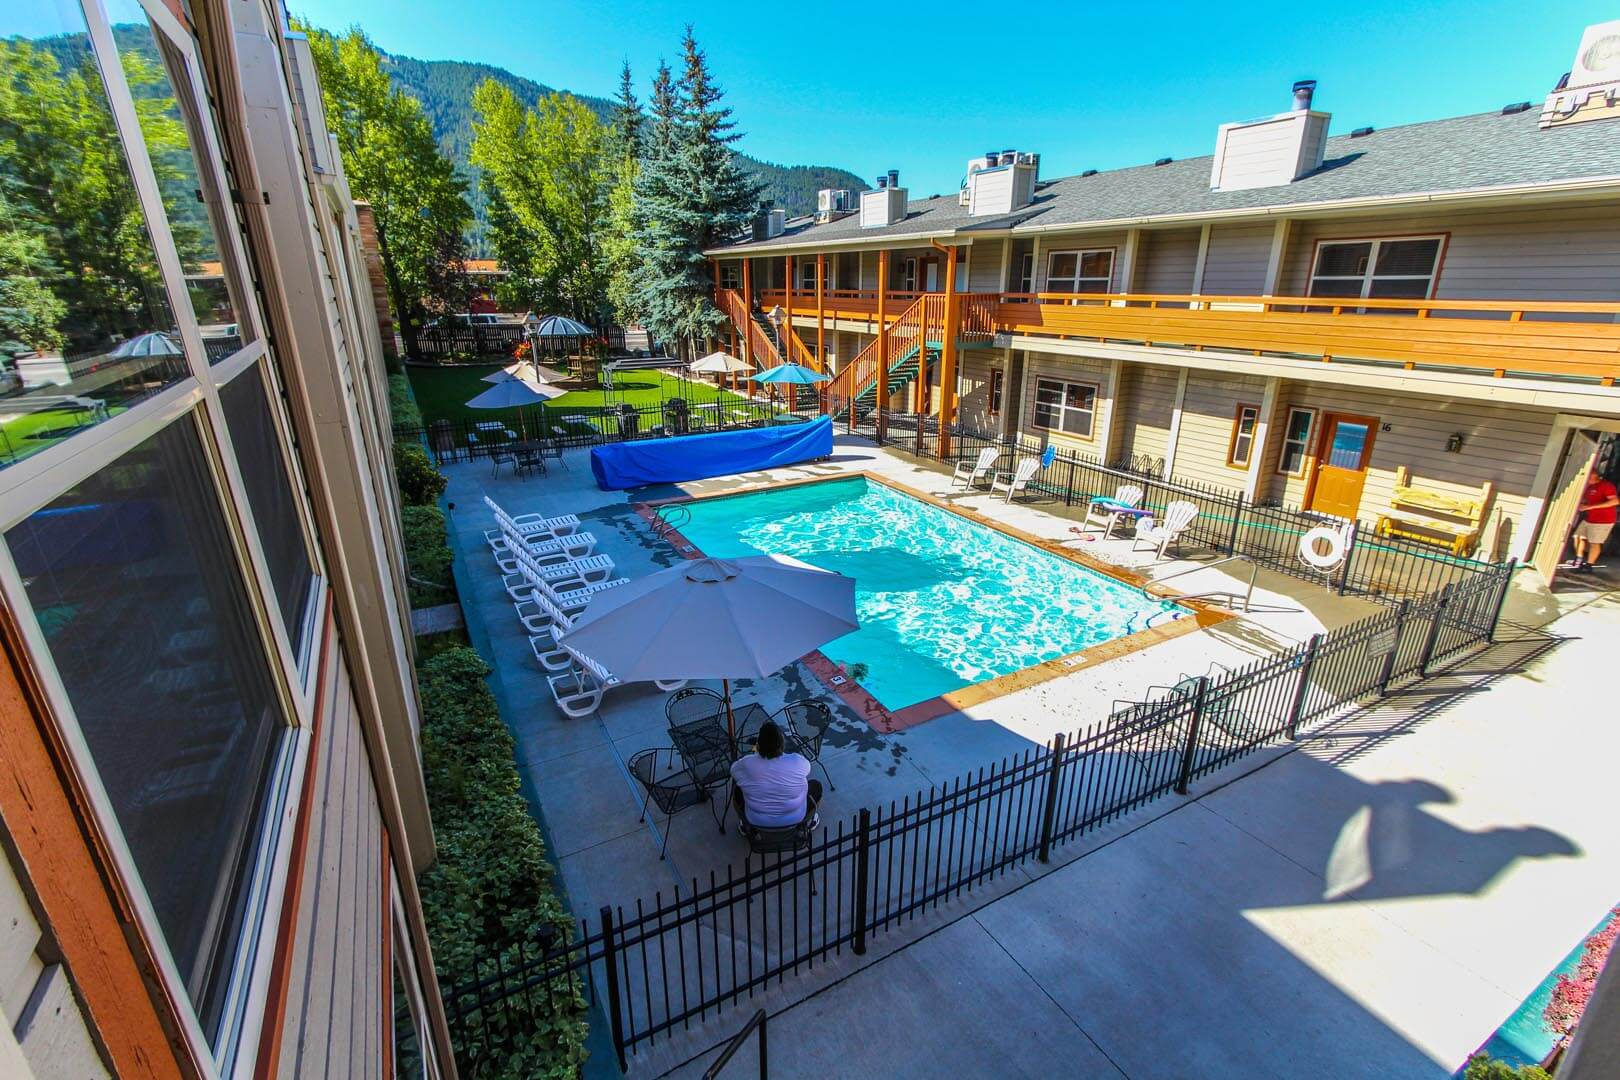 A crisp outdoor swimming pool at VRI's Jackson Hole Towncenter in Wyoming.